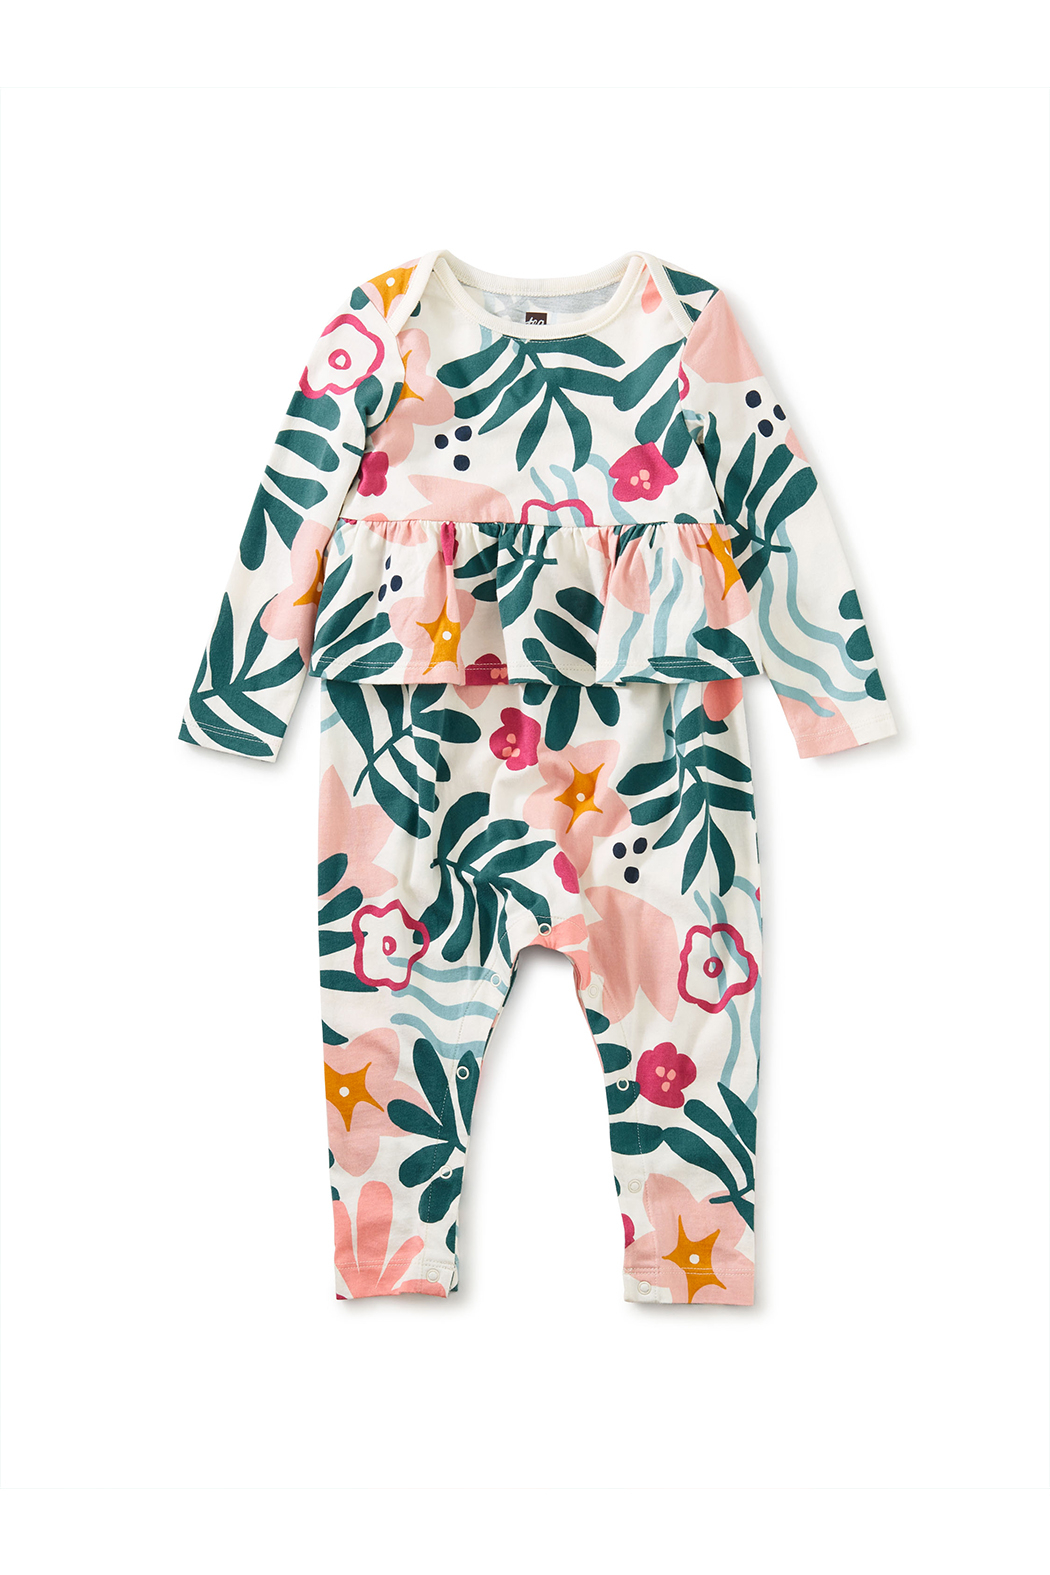 Tea Collection Peplum Baby Romper - Galapagos Vacation - Main Image